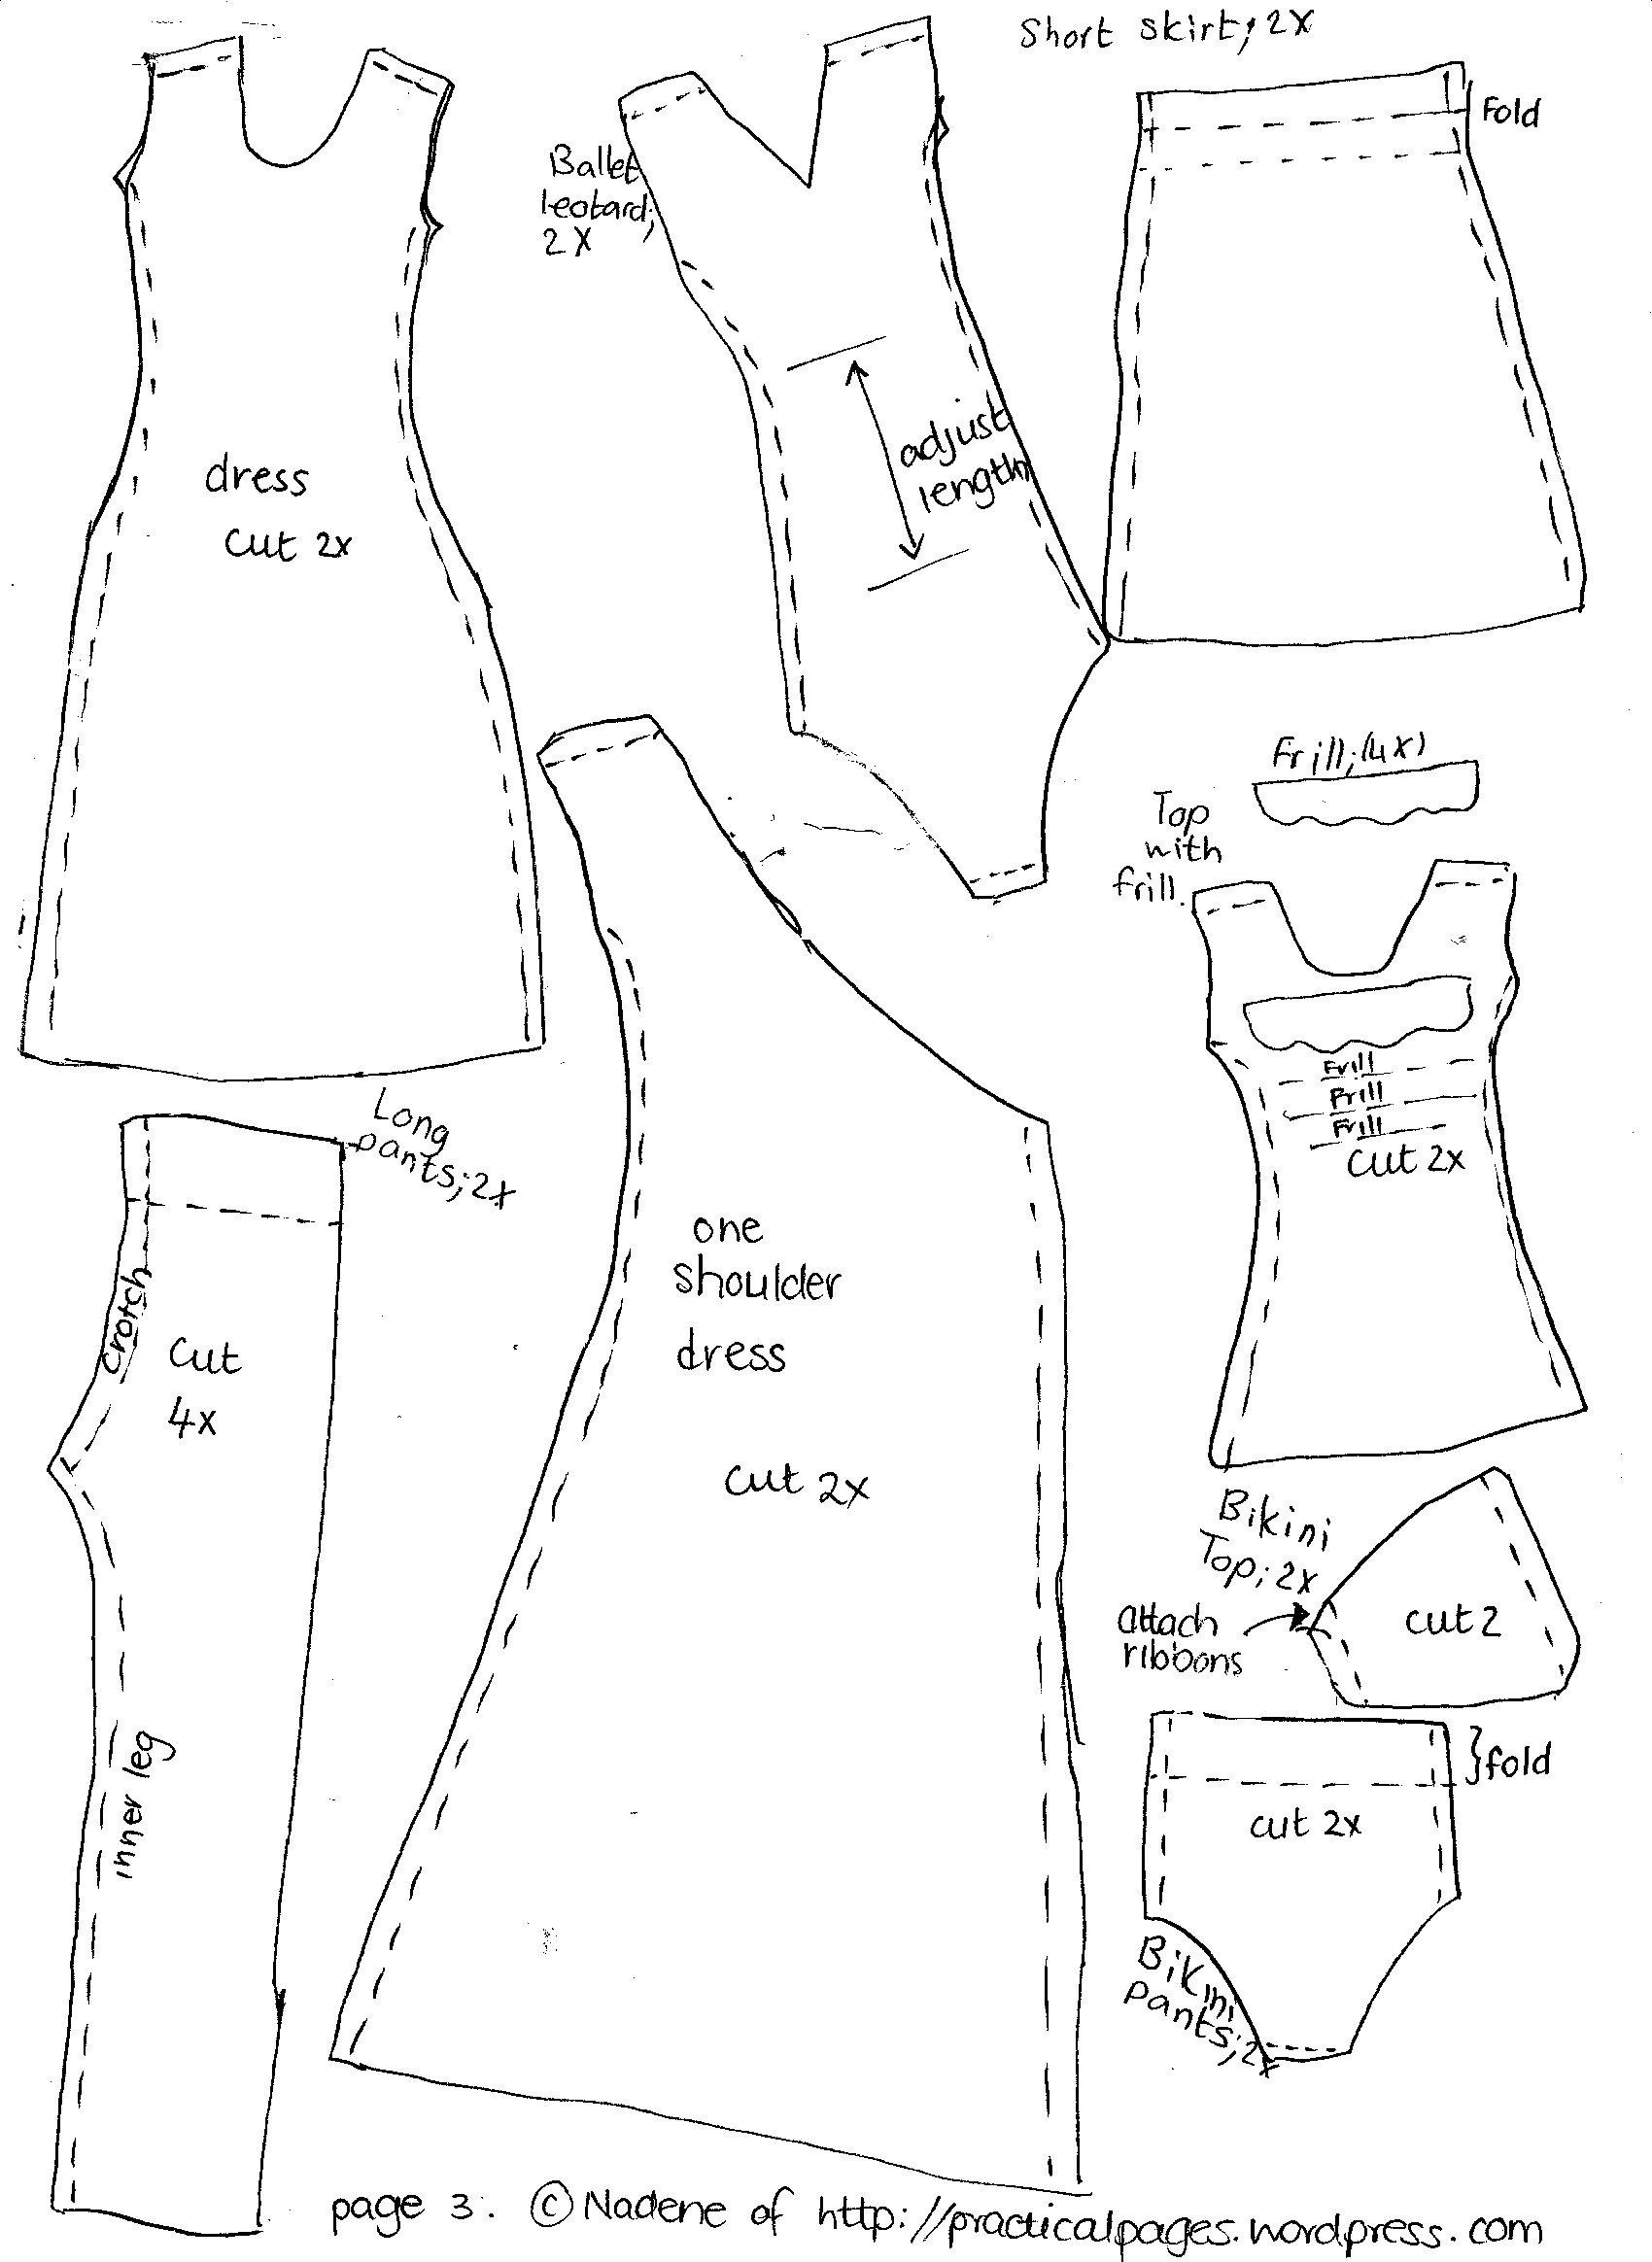 Free Printable American Girl Doll Clothes Patterns Awesome Make A - American Girl Doll Clothes Patterns Free Printable